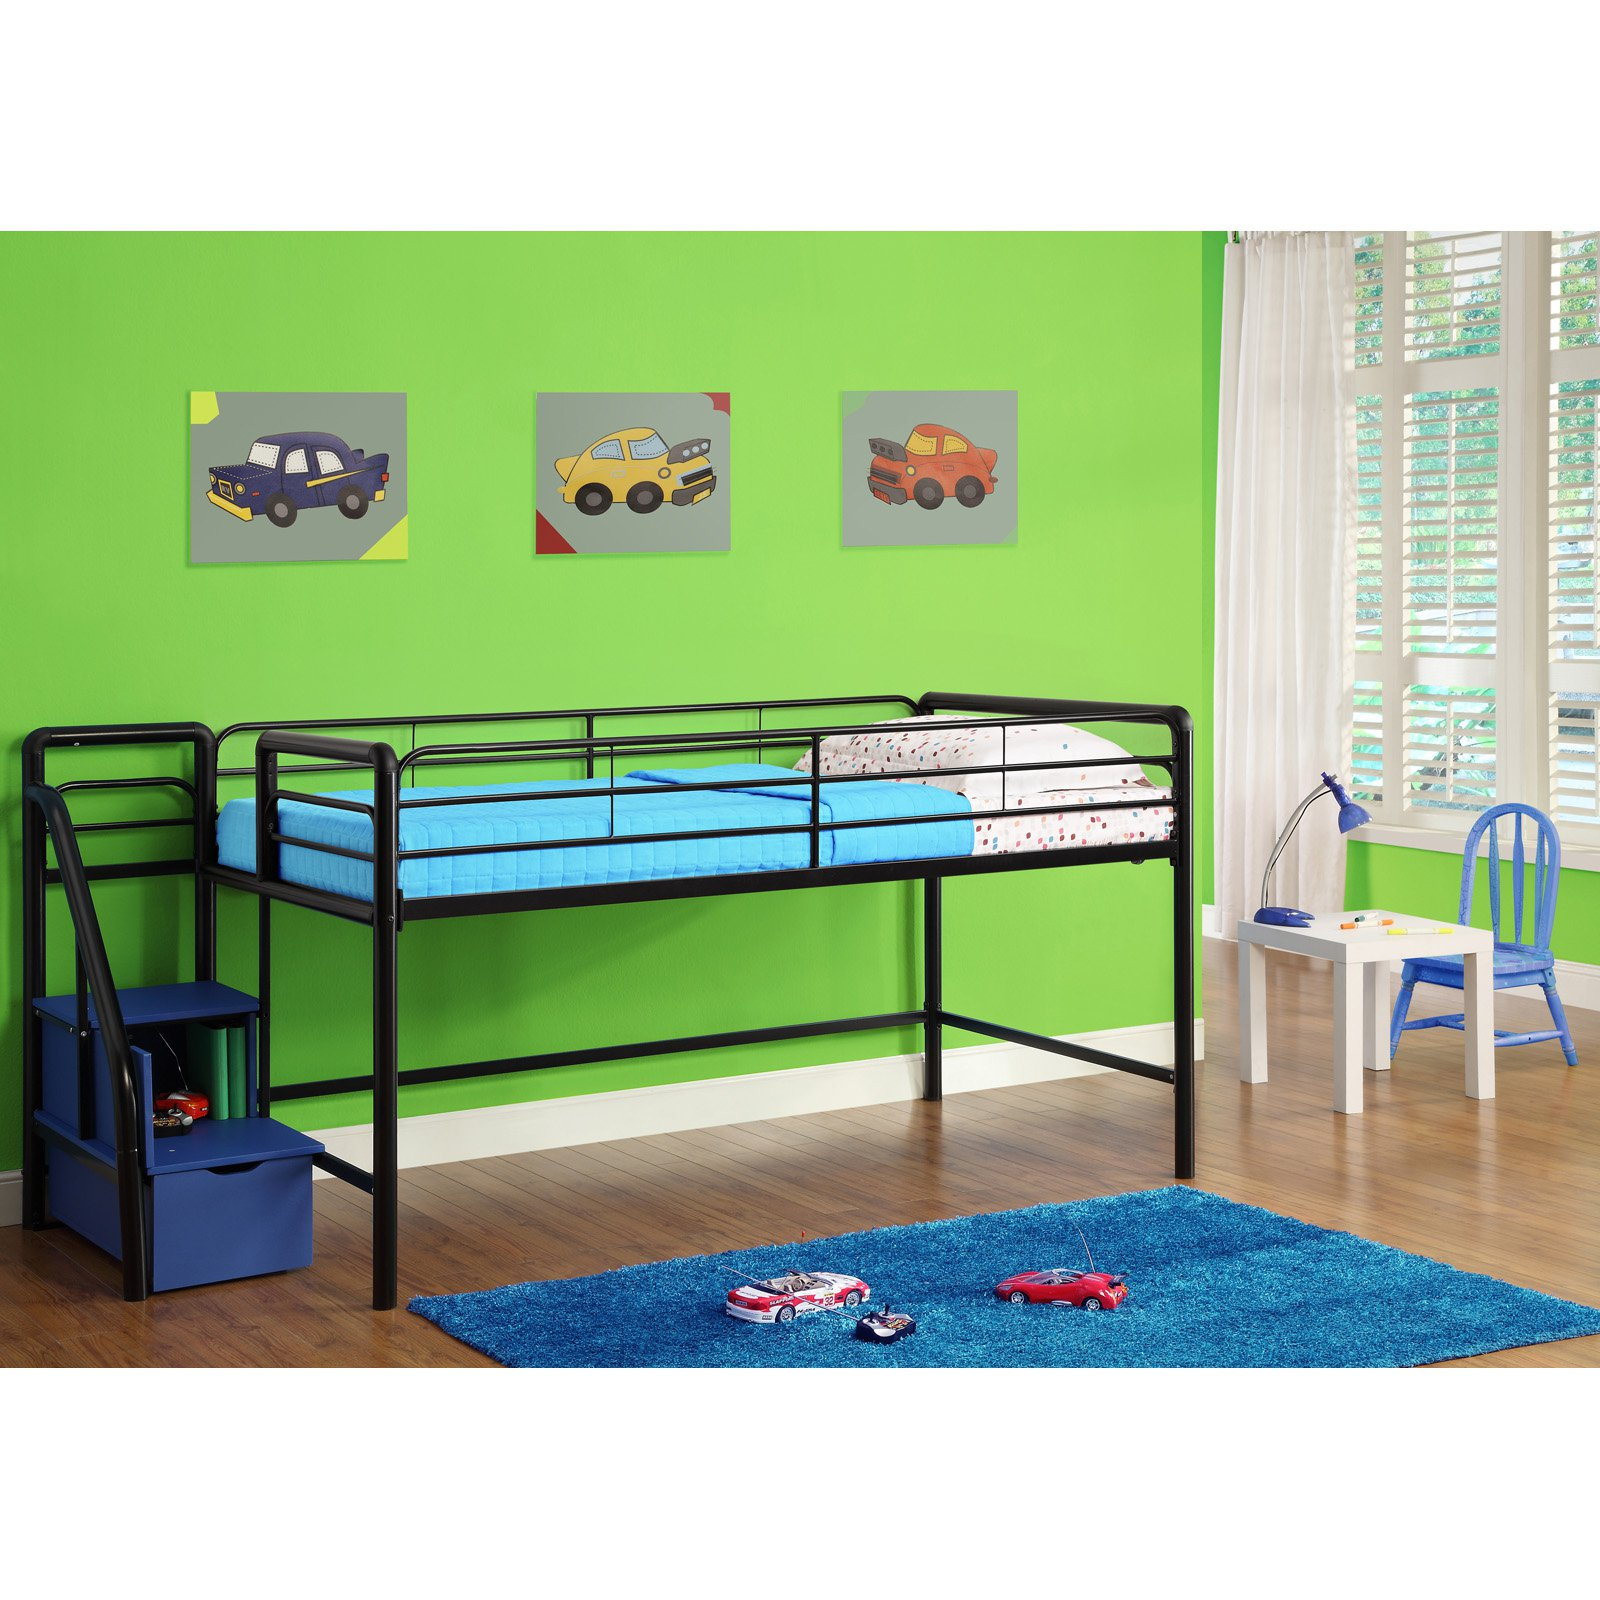 Twin Jr Loft Bed.Dhp Junior Twin Loft Bed With Storage Steps Multiple Colors